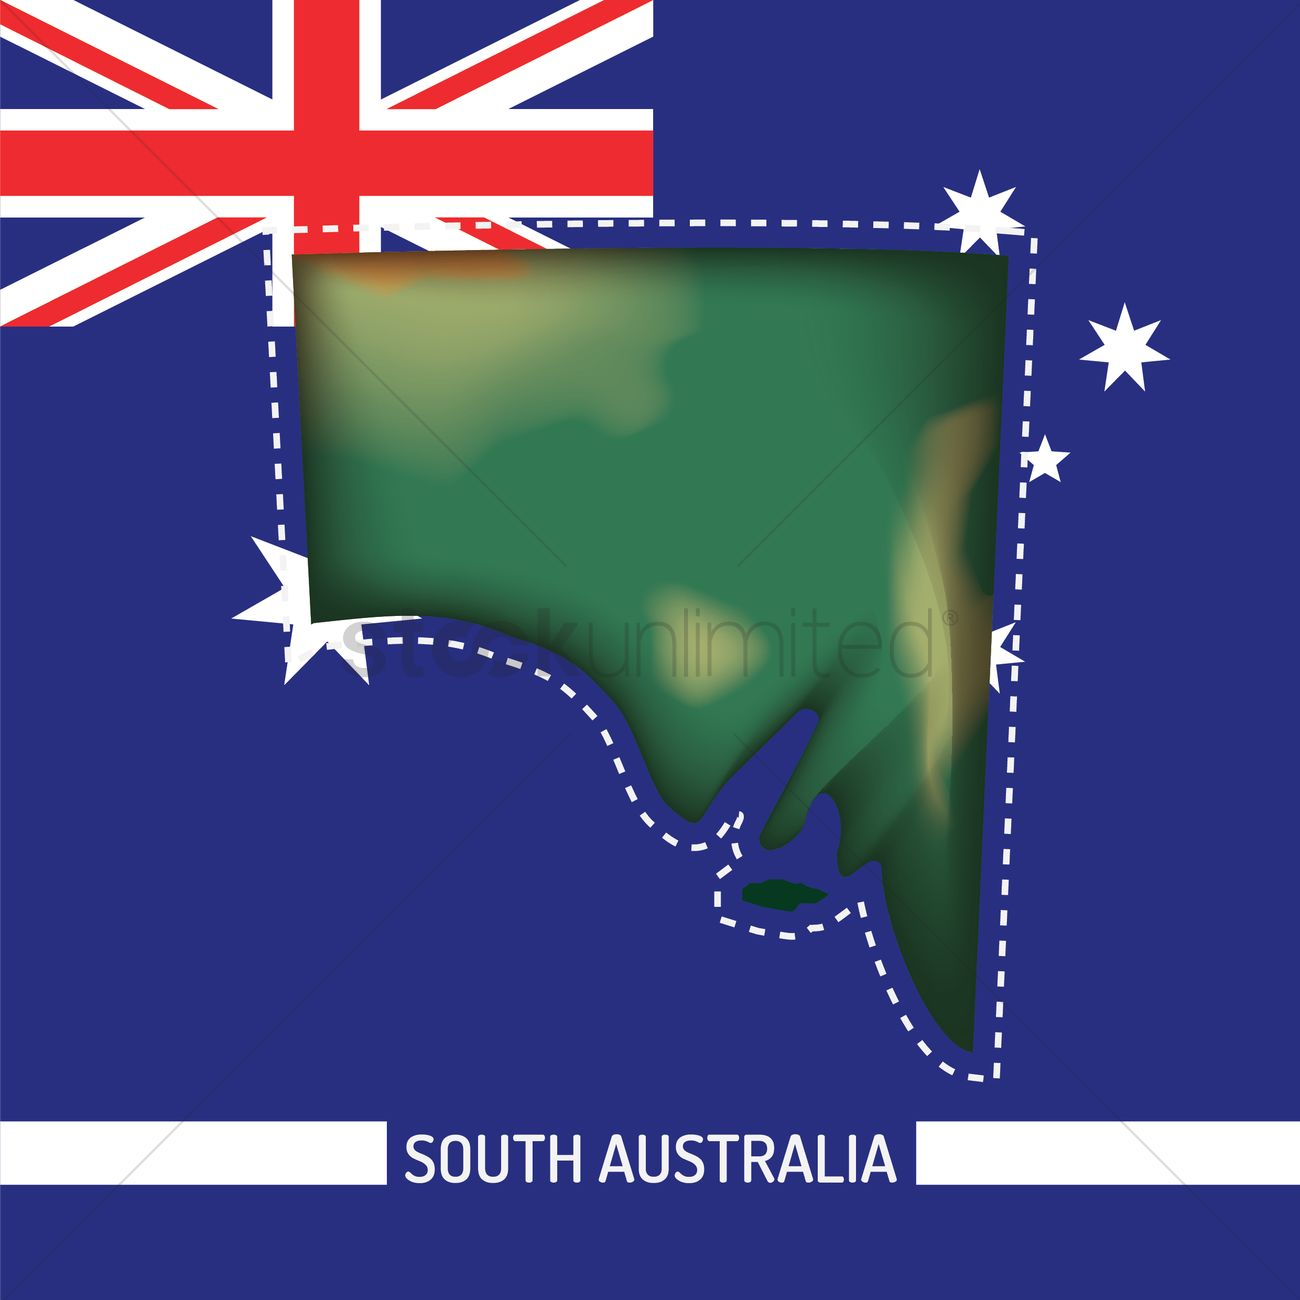 Australia Map With Flag.South Australia Map On Australia Flag Vector Image 1961480